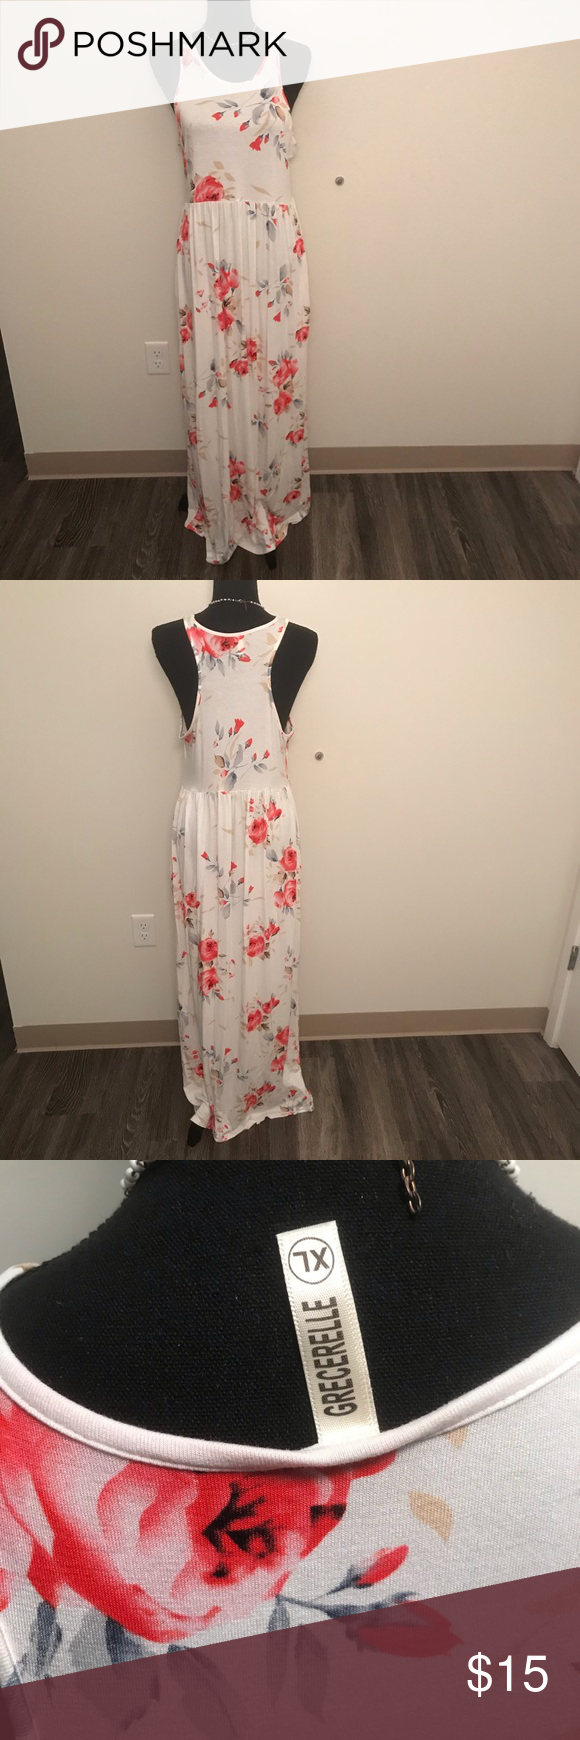 White With Pink Floral Stretchy Maxi Dress Pink Floral Maxi Dress Stretchy [ 1740 x 580 Pixel ]